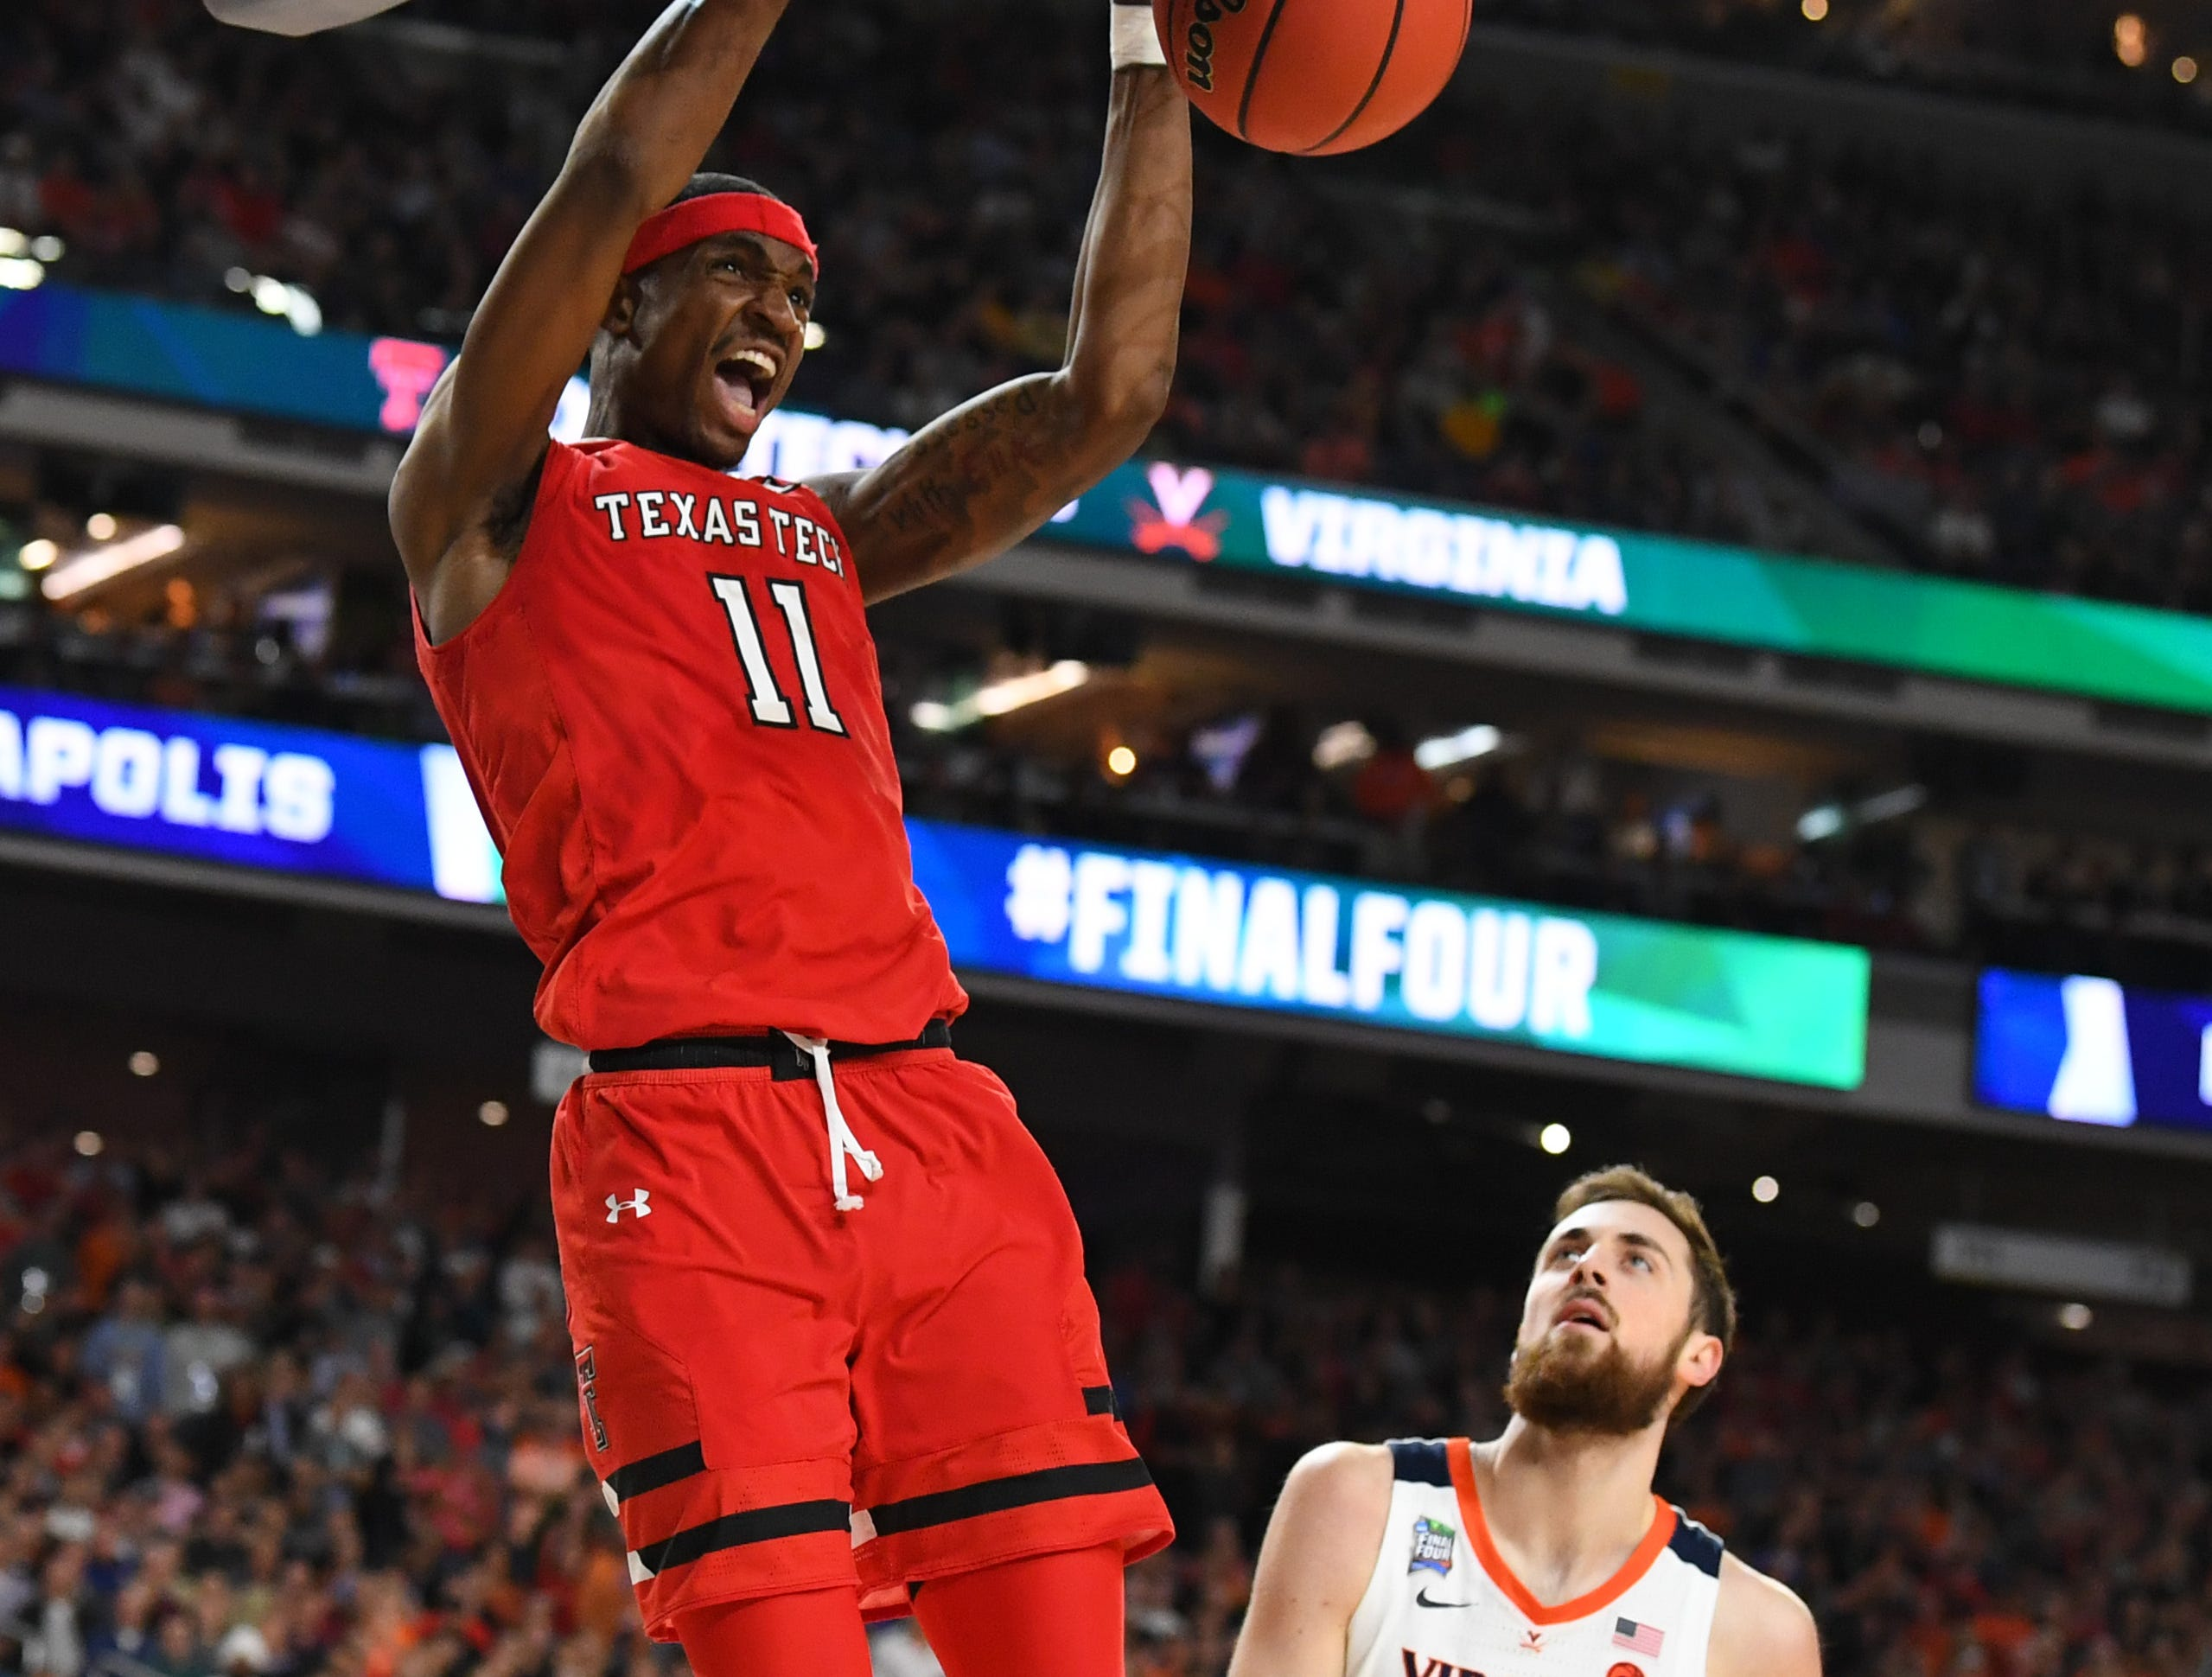 Apr 8, 2019; Minneapolis, MN, USA; Texas Tech Red Raiders forward Tariq Owens (11) dunks the ball past Virginia Cavaliers forward Jay Huff (30) in the championship game of the 2019 men's Final Four at US Bank Stadium. Mandatory Credit: Robert Deutsch-USA TODAY Sports